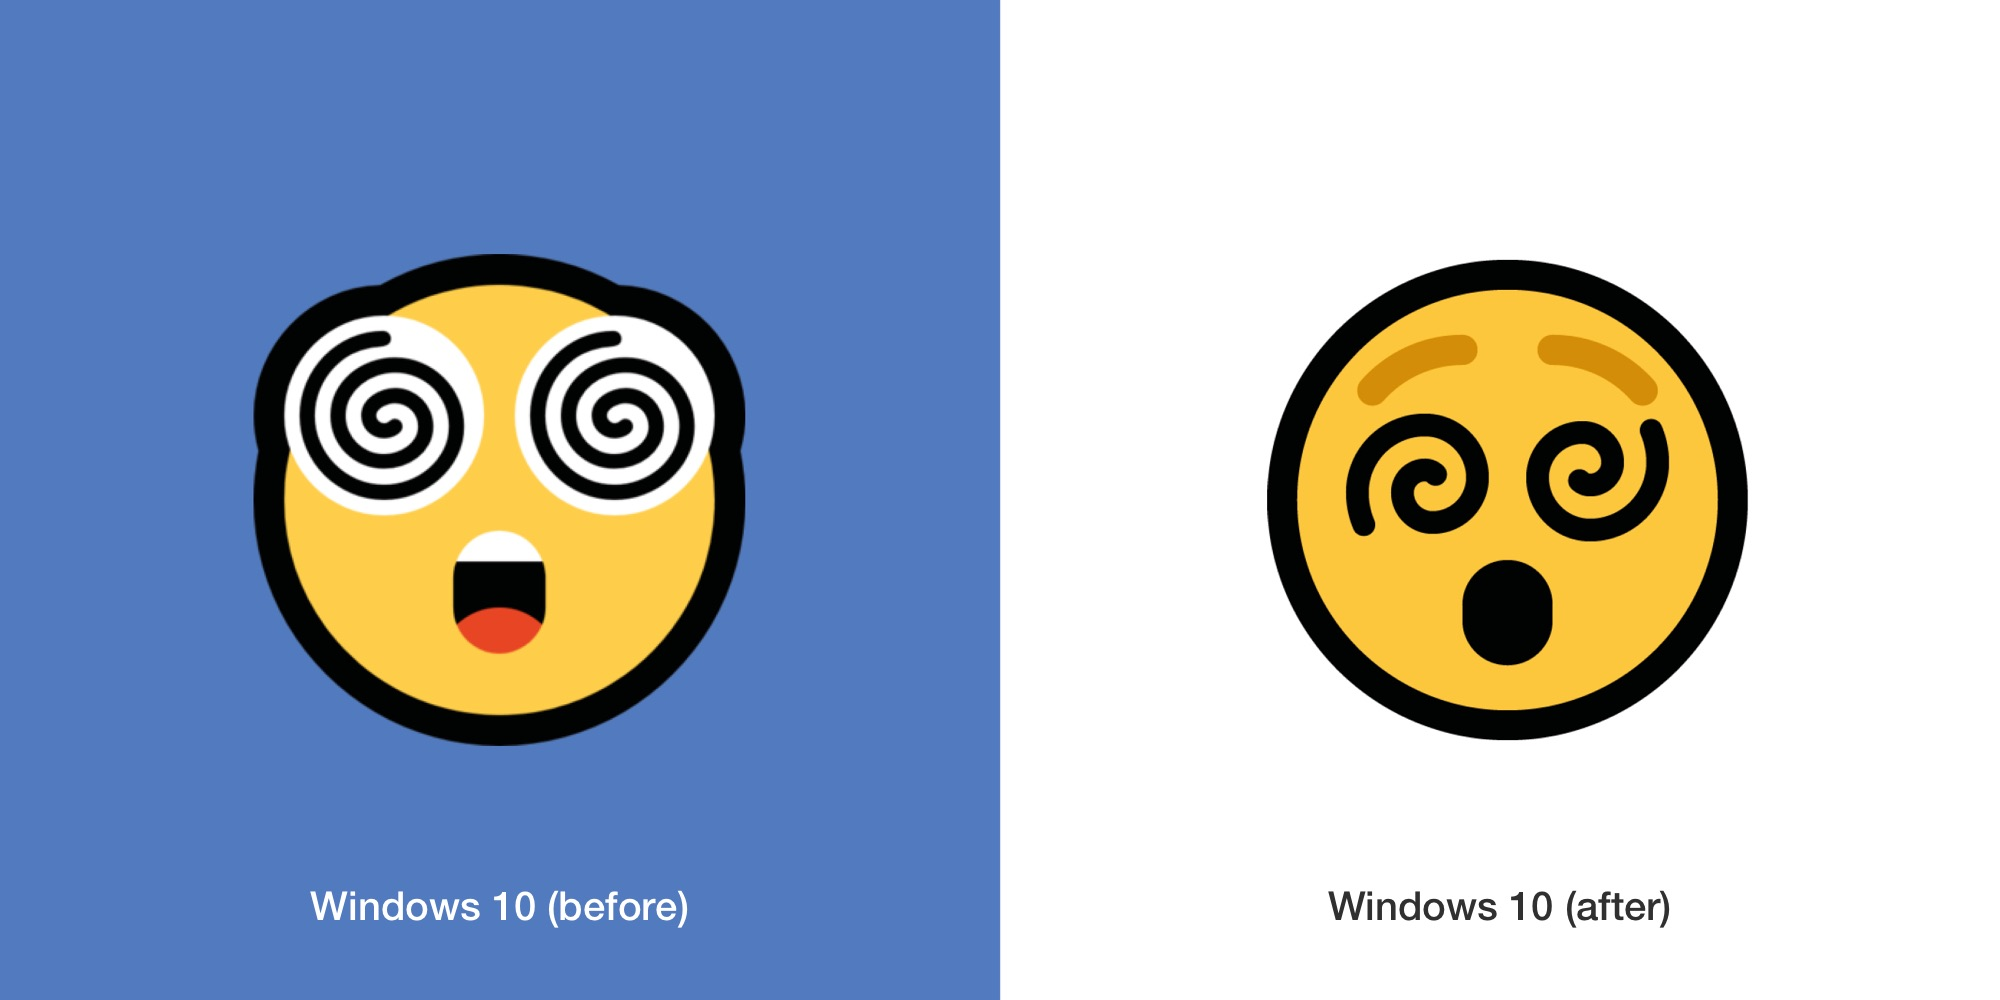 dizzy-face-emojipedia-windows10-april-2018-emojipedia